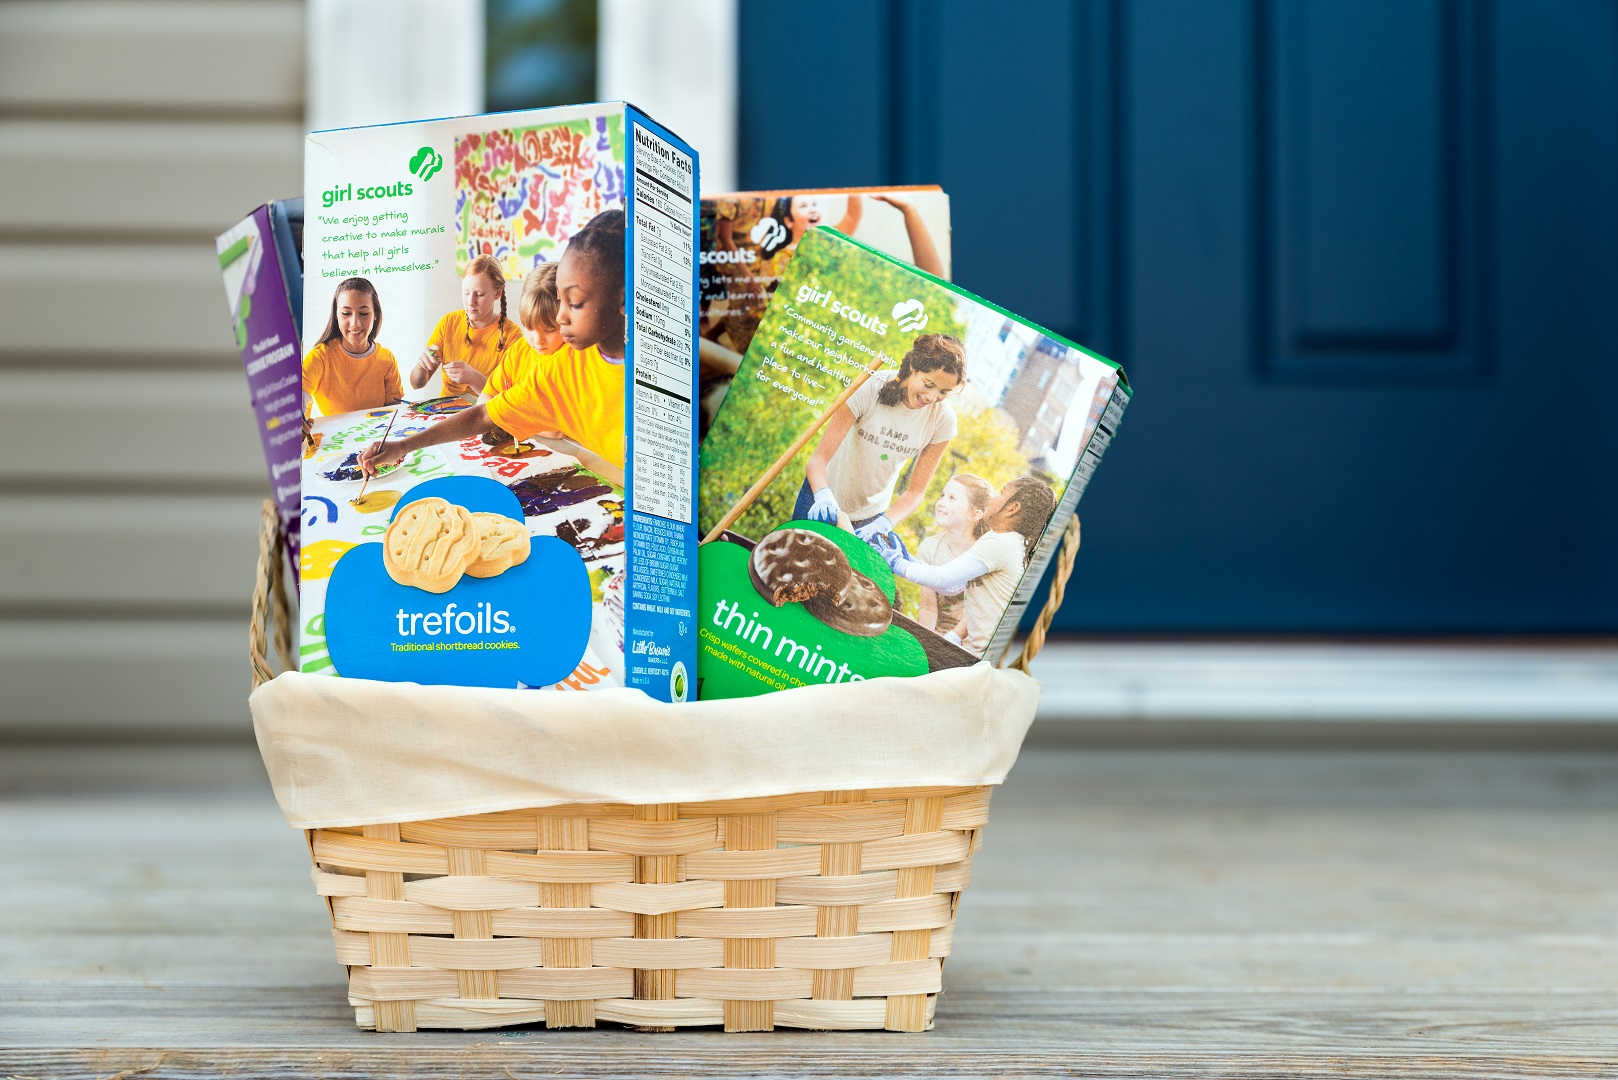 Boxes of Girl Scout Cookies in Basket on Doorstep